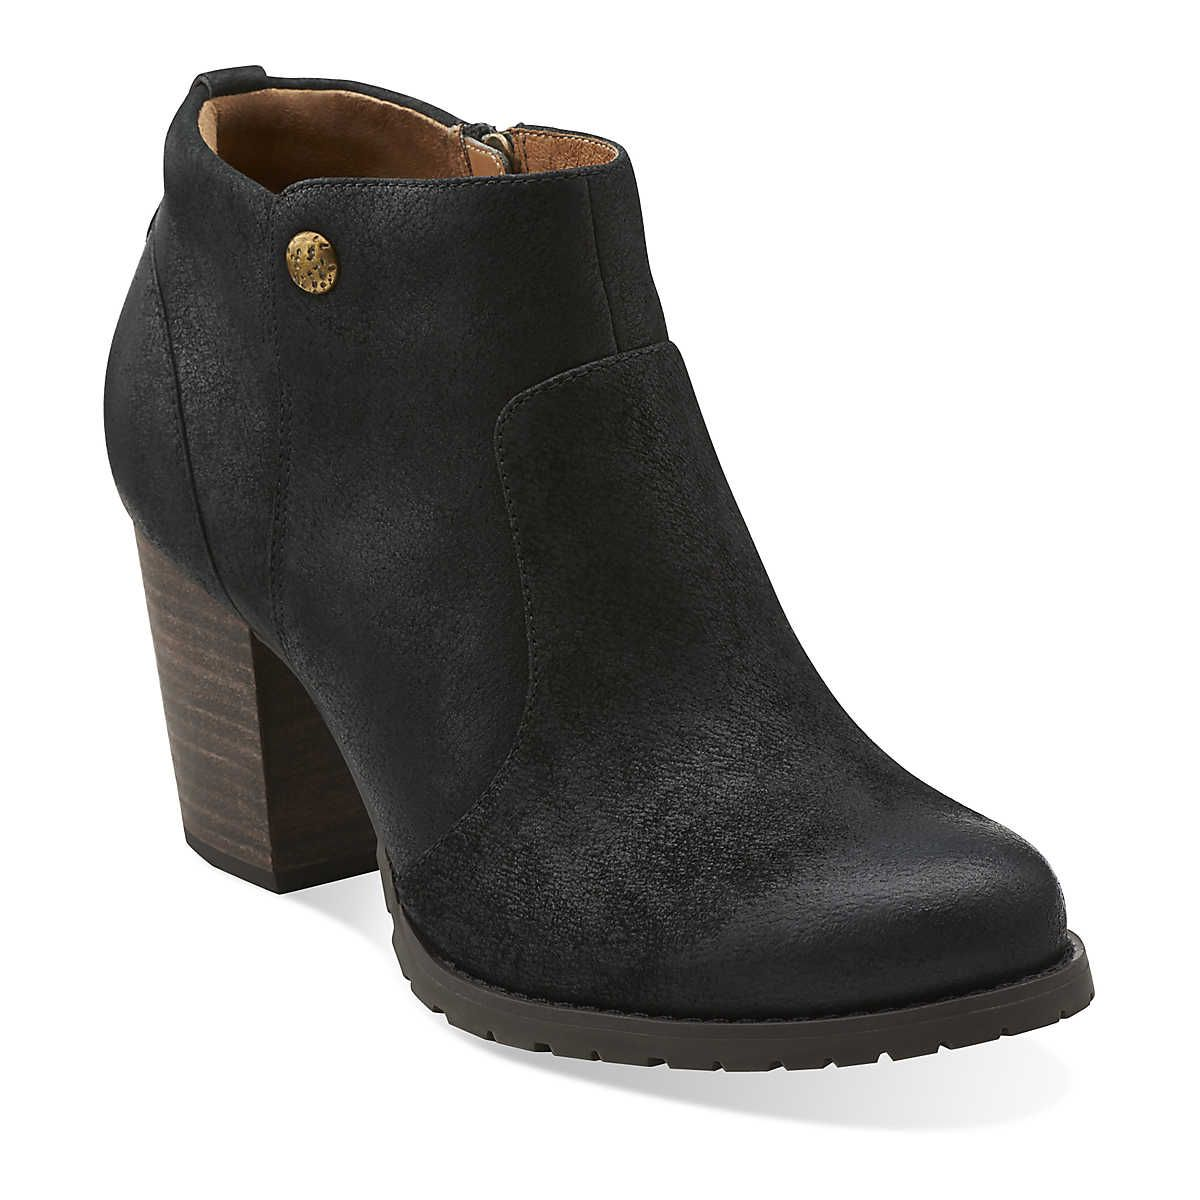 Mission Philby in Black Leather - Womens Boots from Clarks